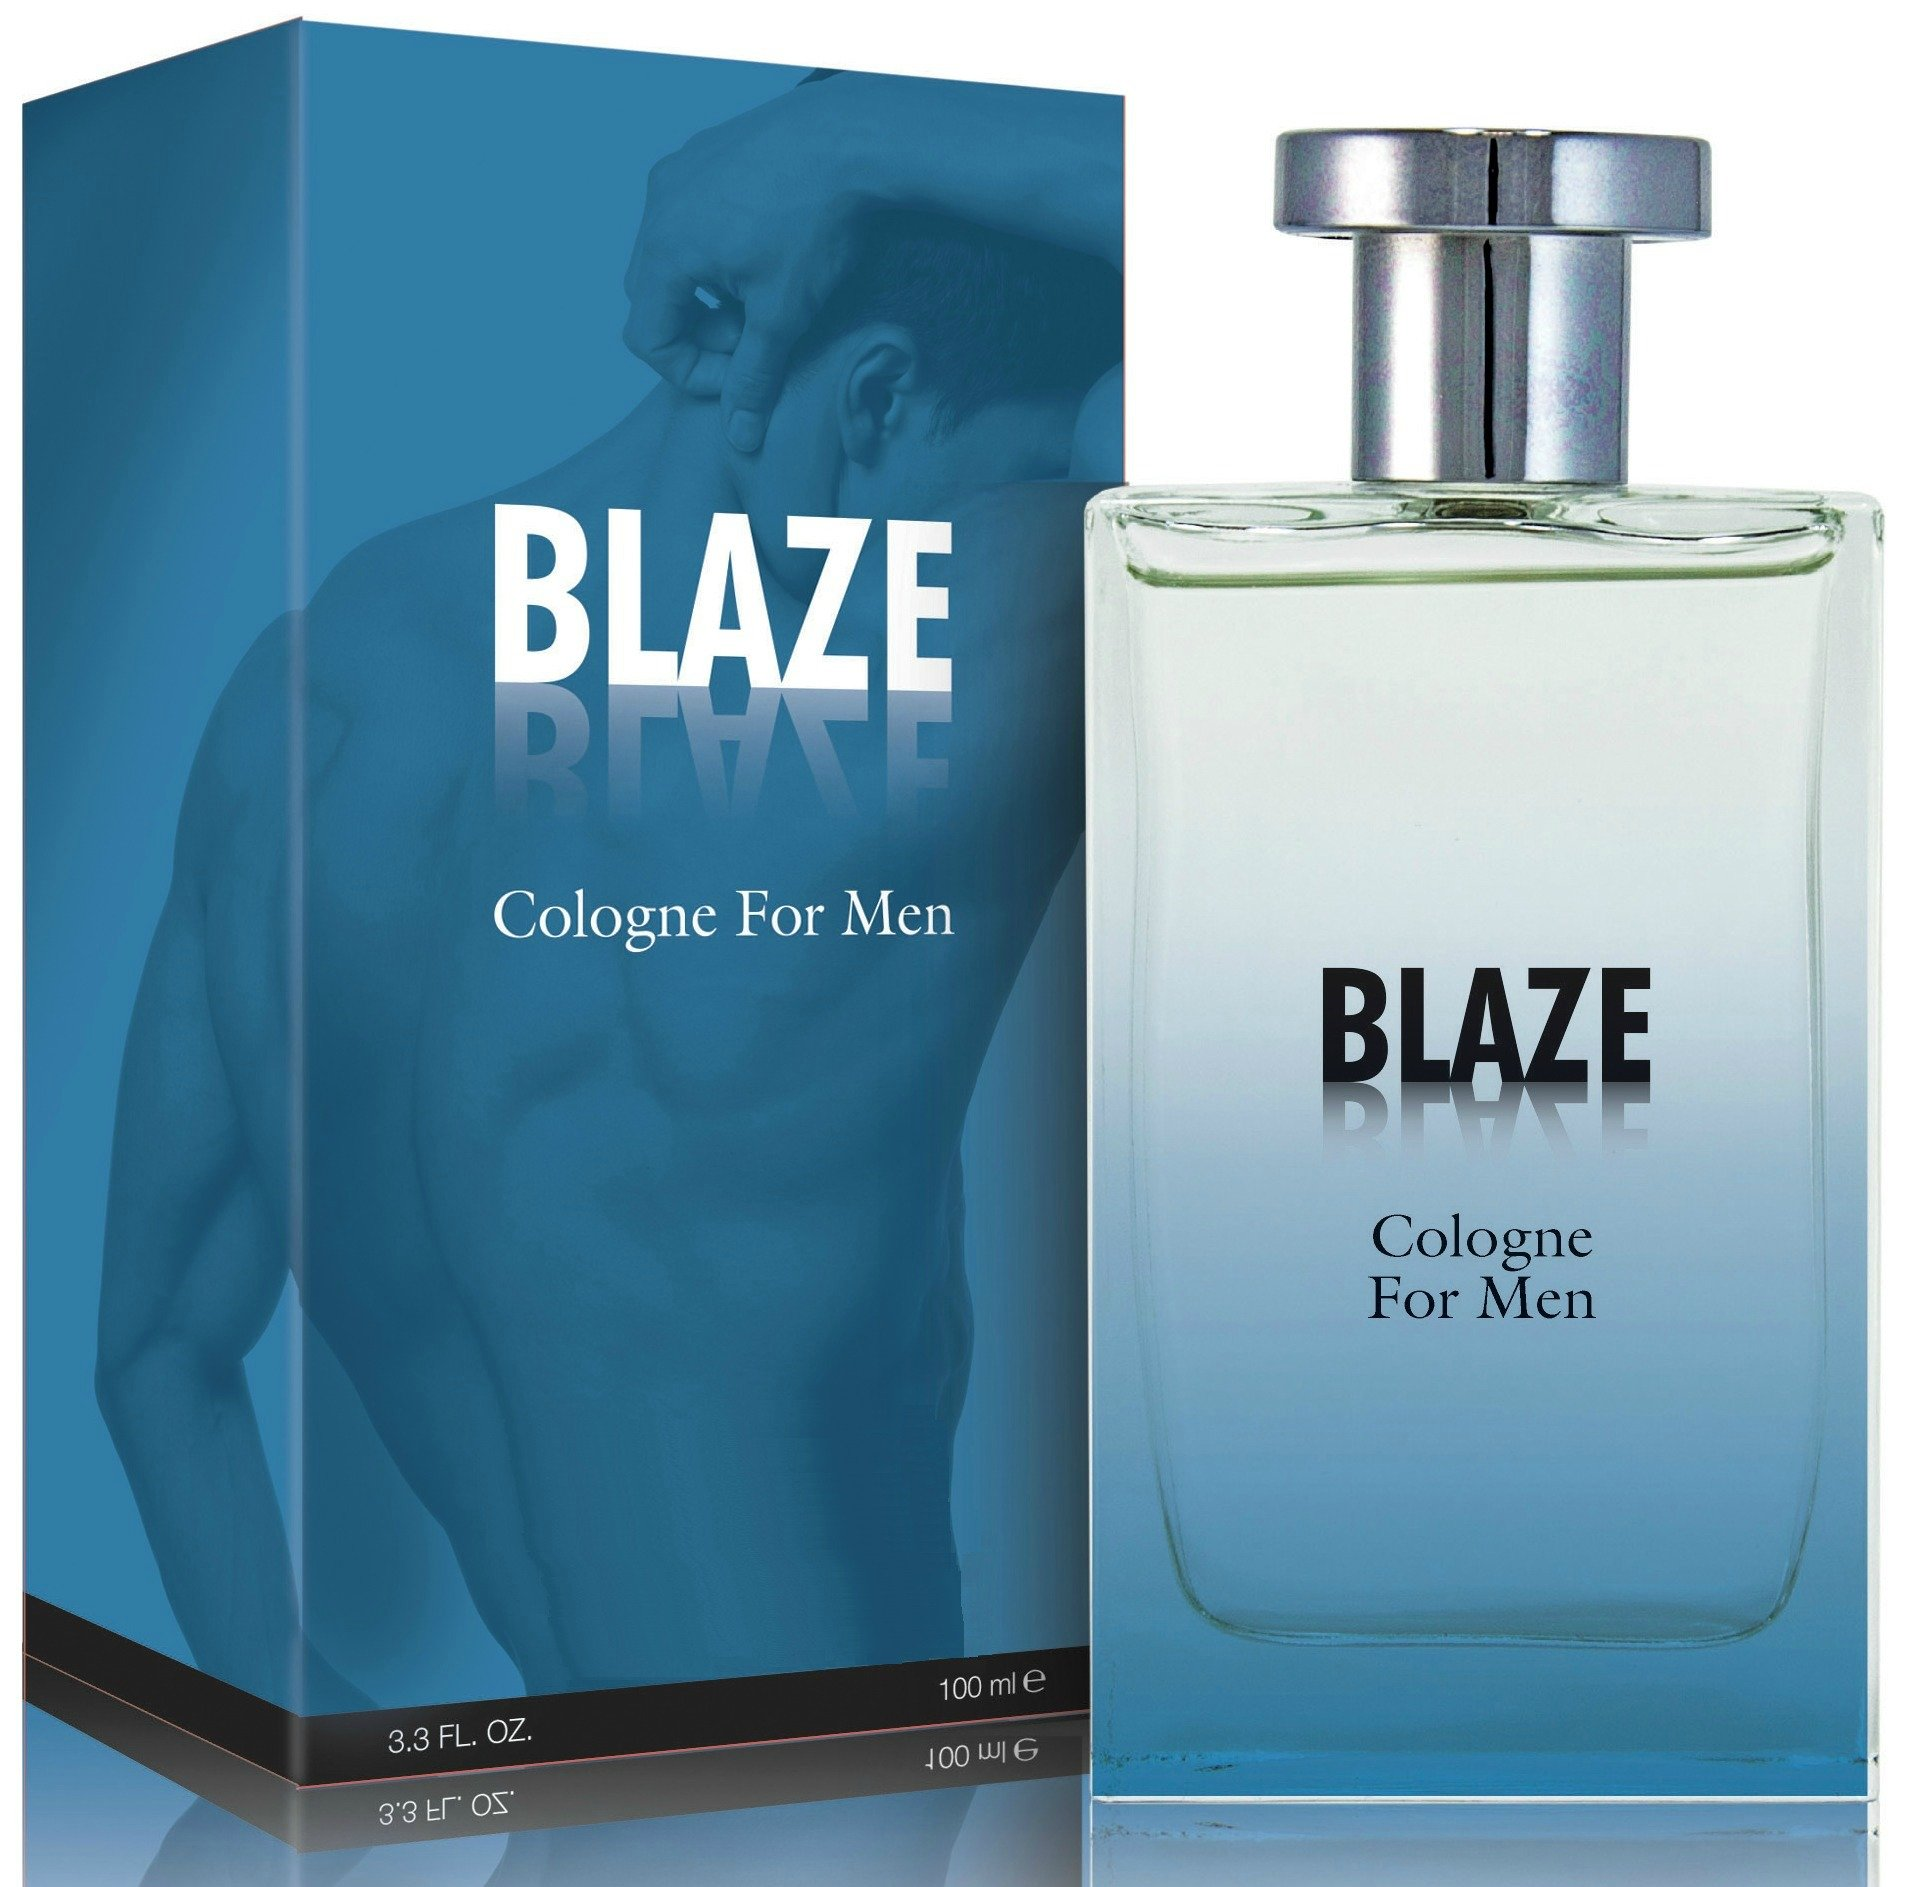 Blaze Cologne Spray for Men, 3.3 Ounces 100 Ml - Scent Similar to Abercrombie and